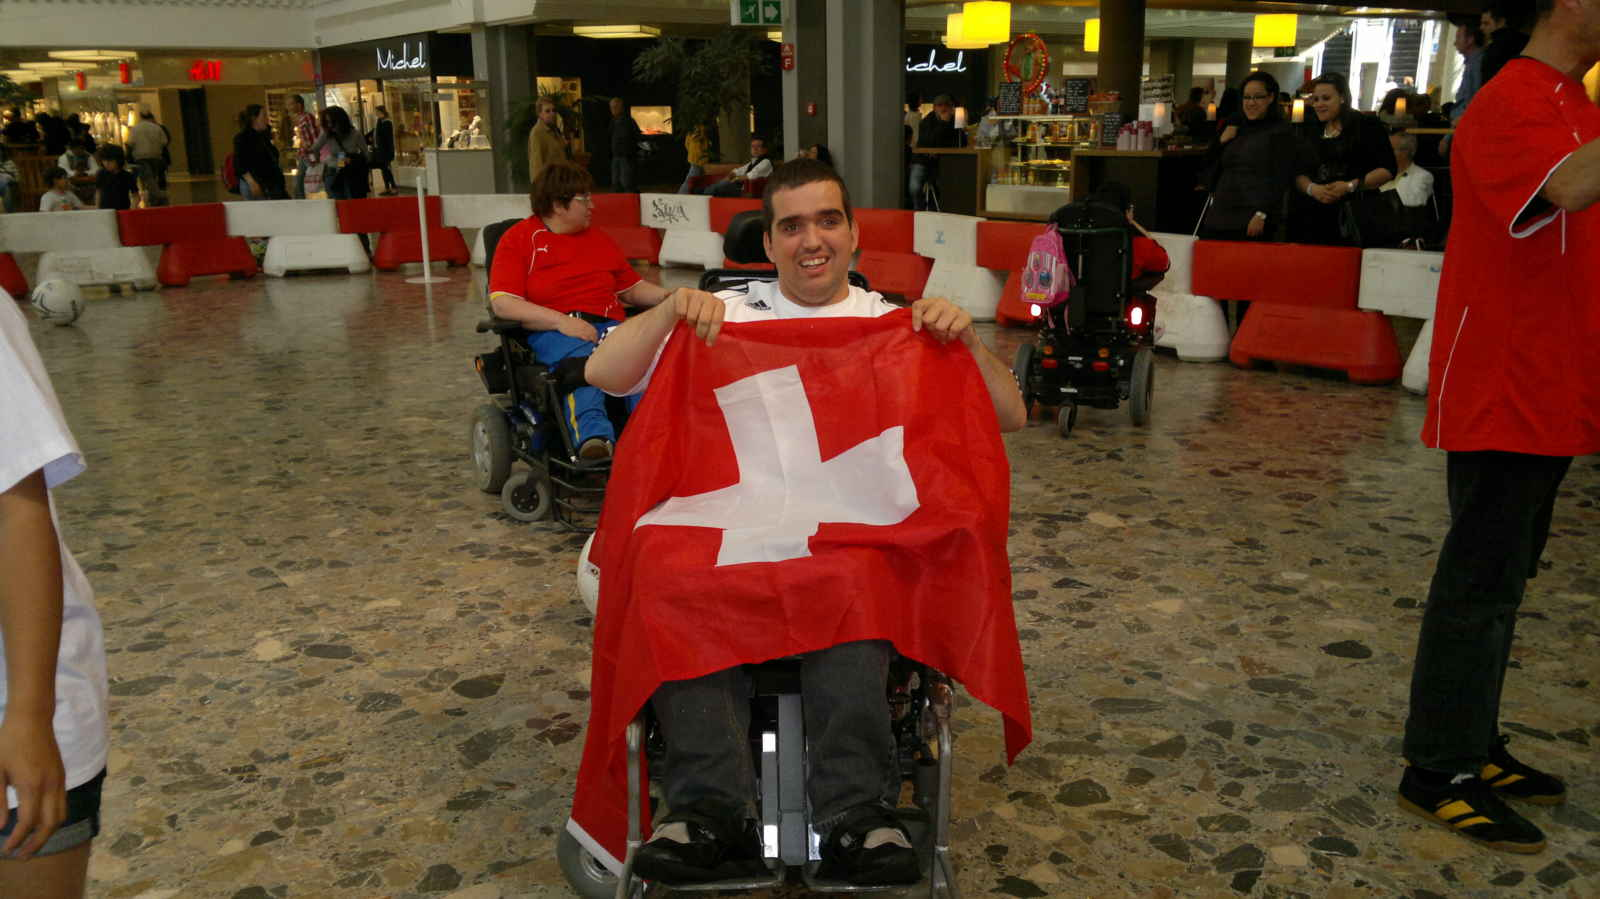 Thousands of fans boost the Swiss National Team to Paris